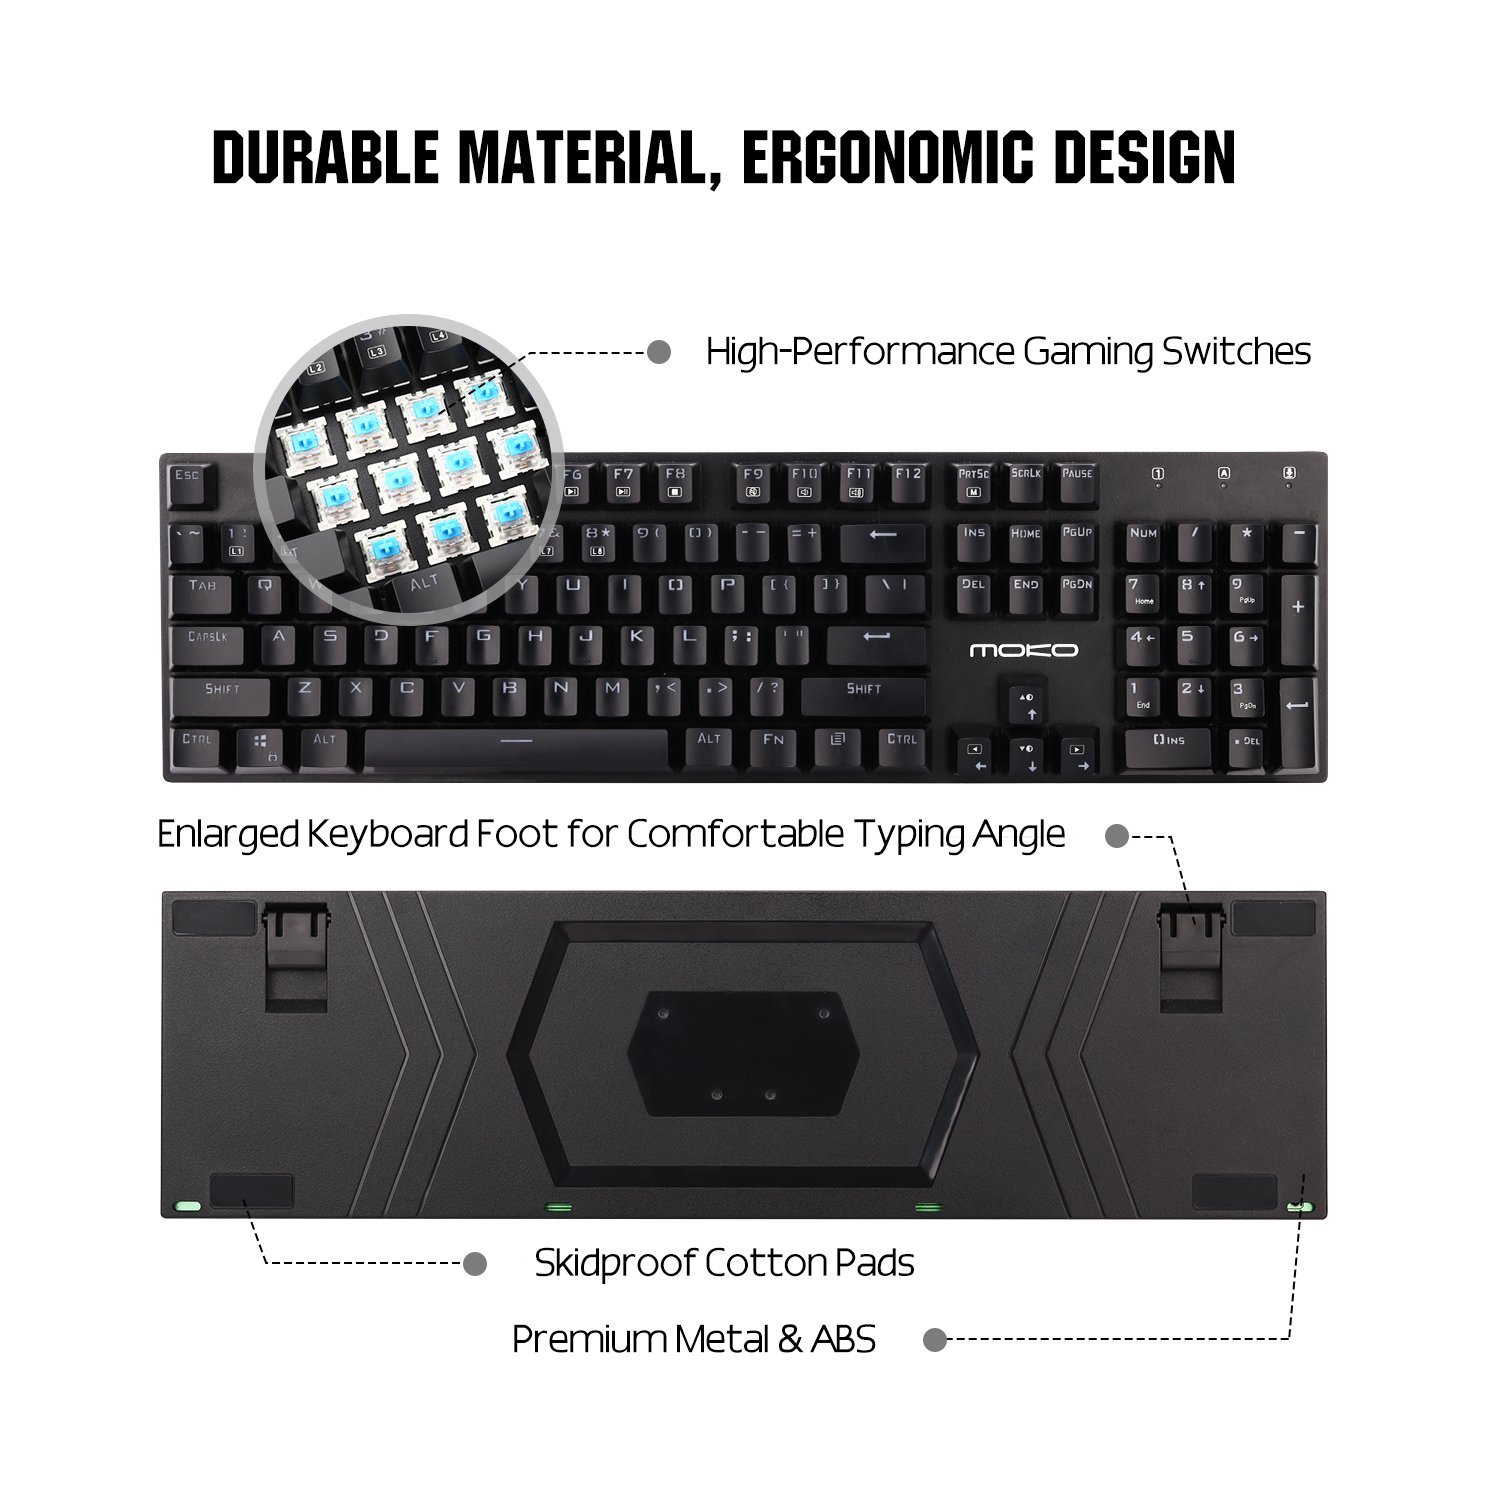 ... 9 Colors Preset LED Backlit Keyboard with 104 Keys, USB Wired Keyboard with Anti-ghosting Keys for PC Laptop Computer, Black: Computers & Accessories